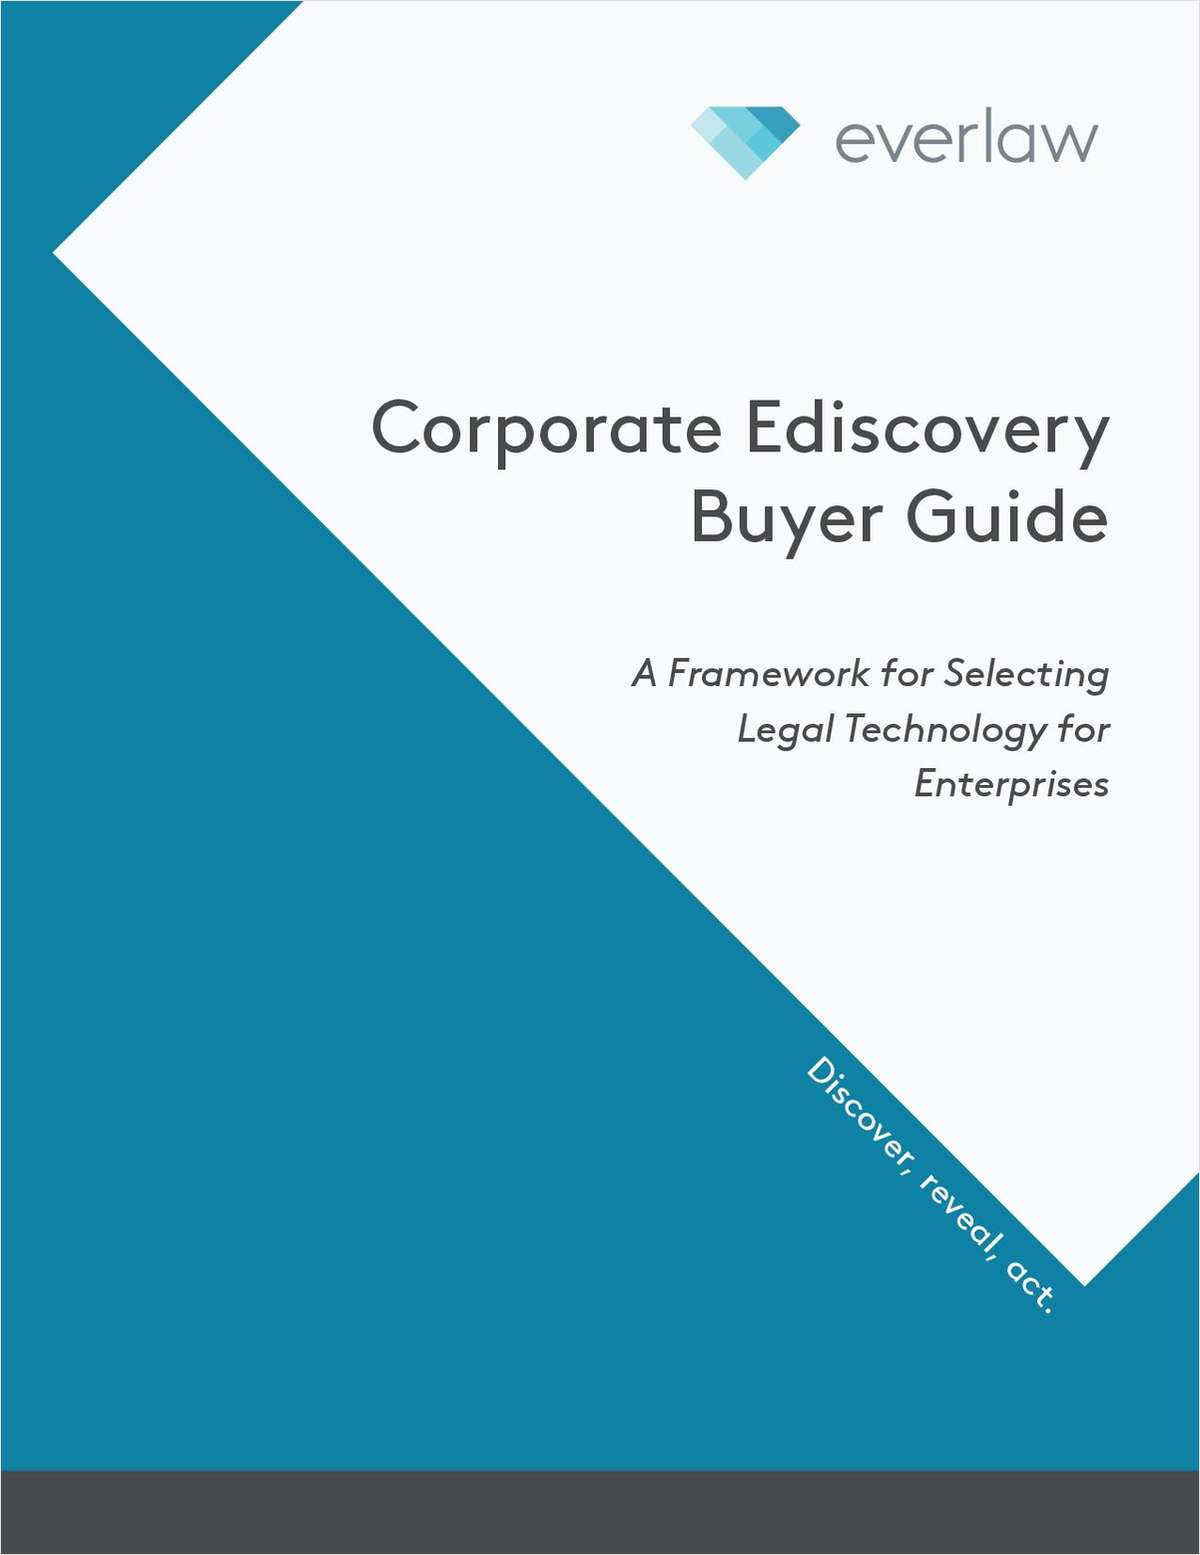 2020 Corporate Ediscovery Buyer Guide